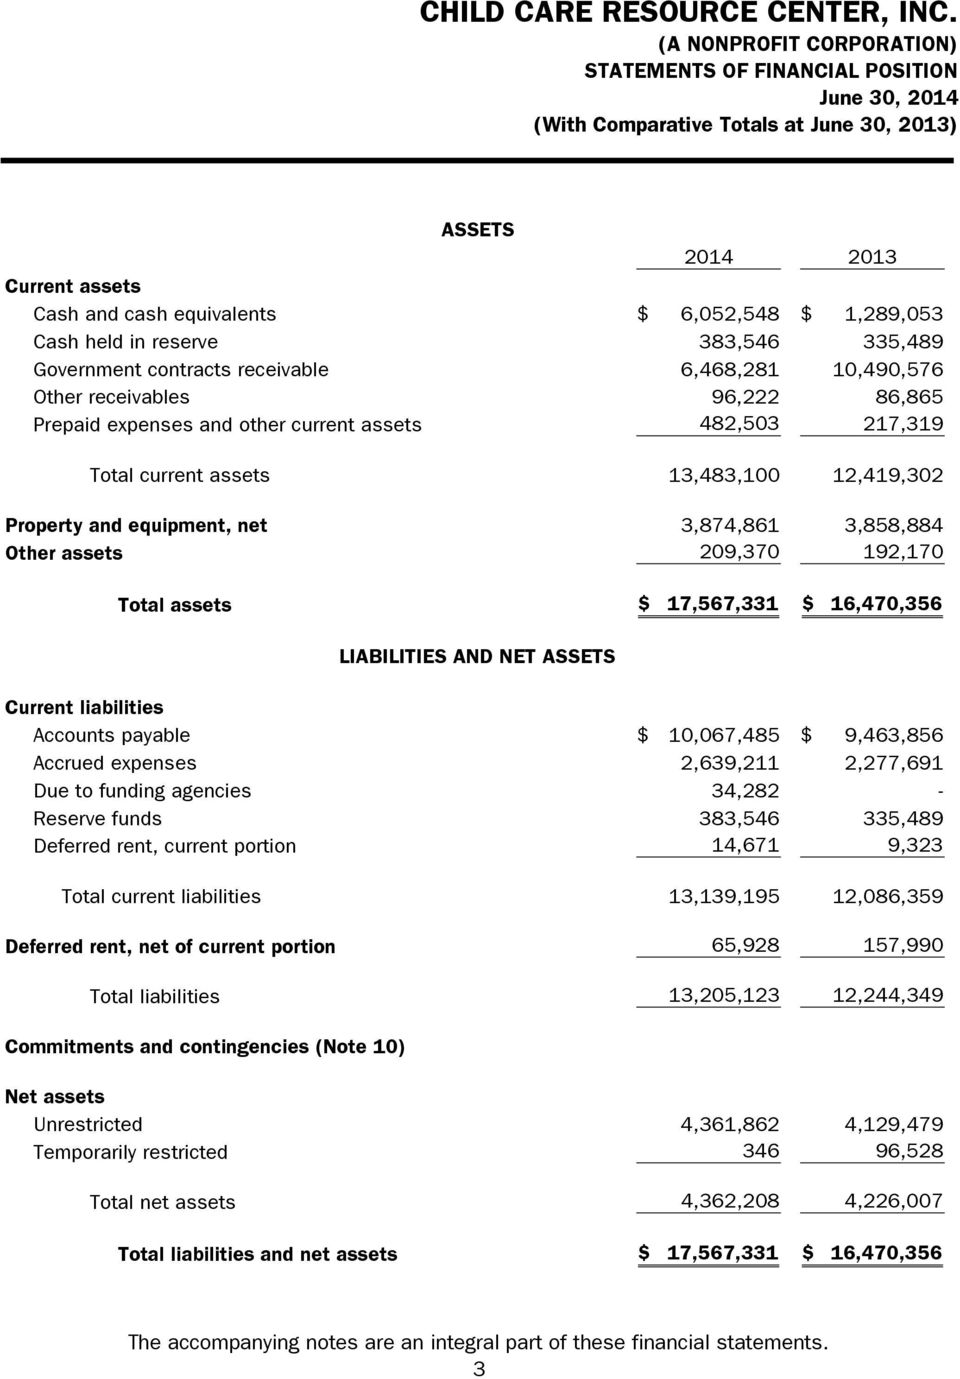 equipment, net 3,874,861 3,858,884 Other assets 209,370 192,170 Total assets $ 17,567,331 $ 16,470,356 Current liabilities Accounts payable $ 10,067,485 $ 9,463,856 Accrued expenses 2,639,211